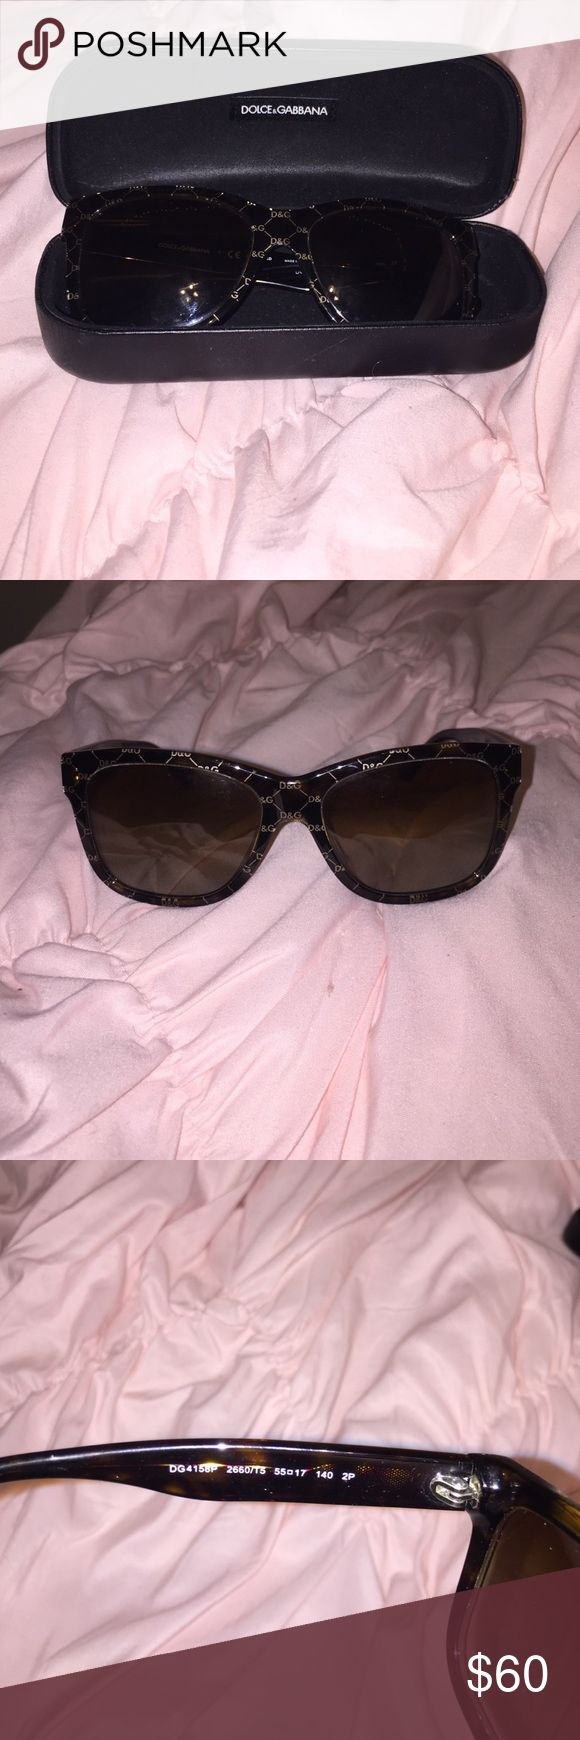 Dolce & Gabbana polarized sunglasses 100% authentic purchased from sunglass hut. Tortoise color with the D&G logo. No scratches and hardly any signs of wear. Comes with hard case. Dolce & Gabbana Accessories Sunglasses